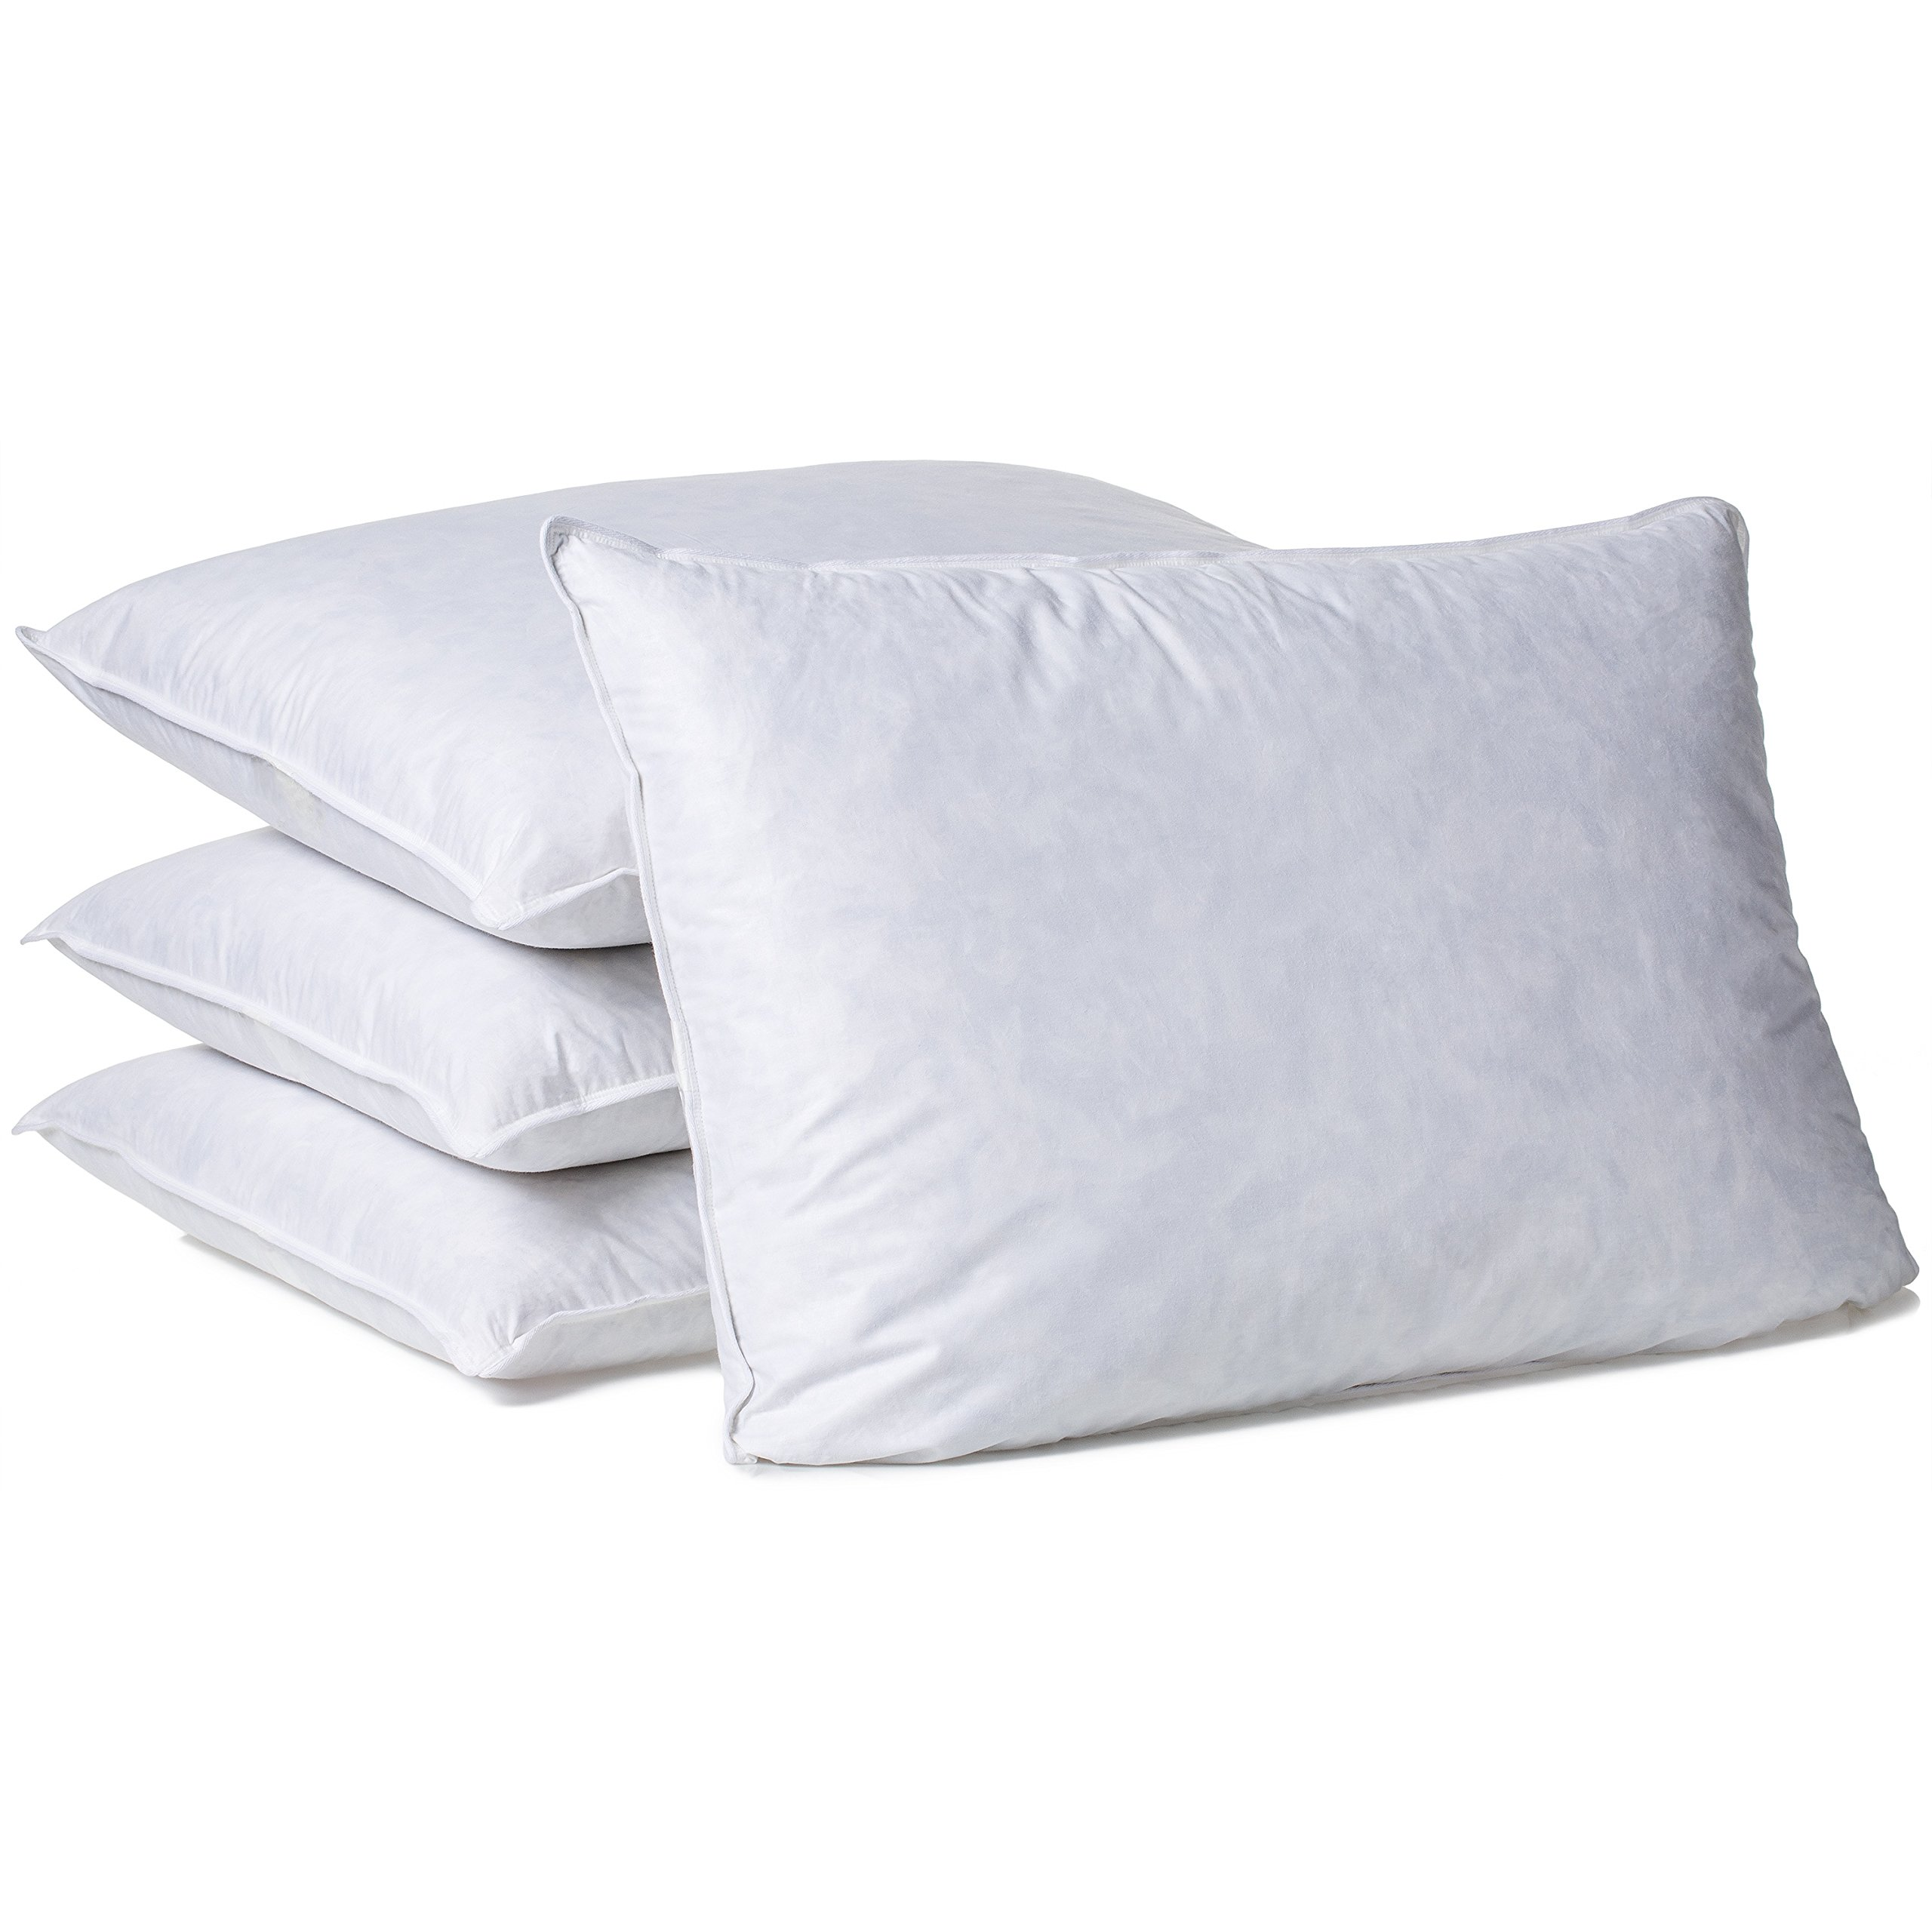 Hotel Madison TruLoft Medium Firm Feather Pillow (Set of 4) King